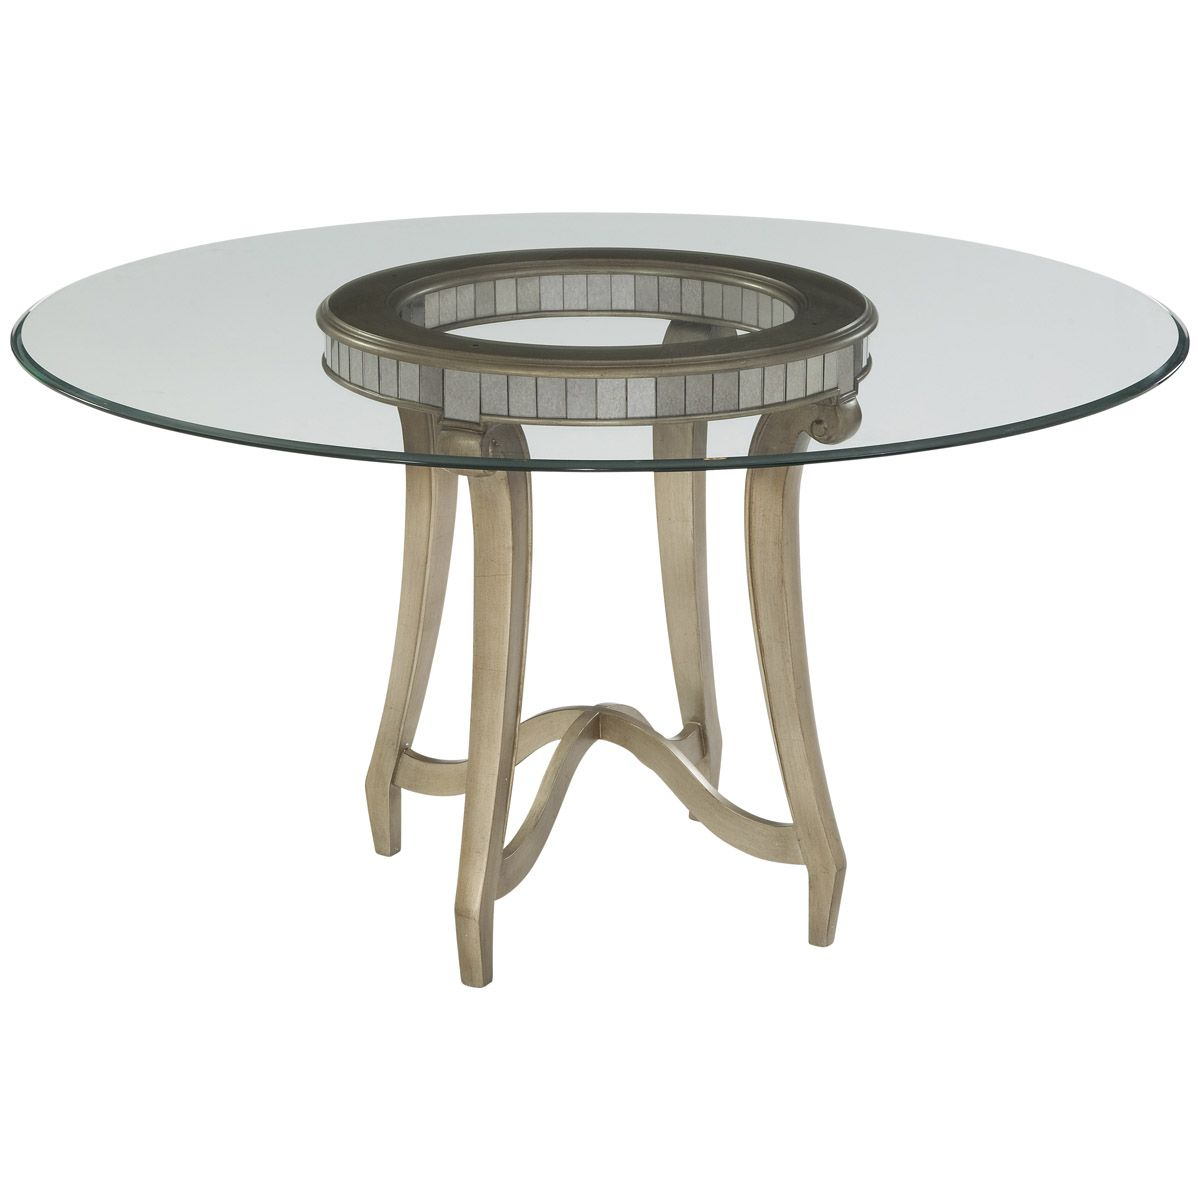 bassett mirror dining table. Bassett Mirror Hollywood Glam Celine Dining Table 2900-700-095EC C